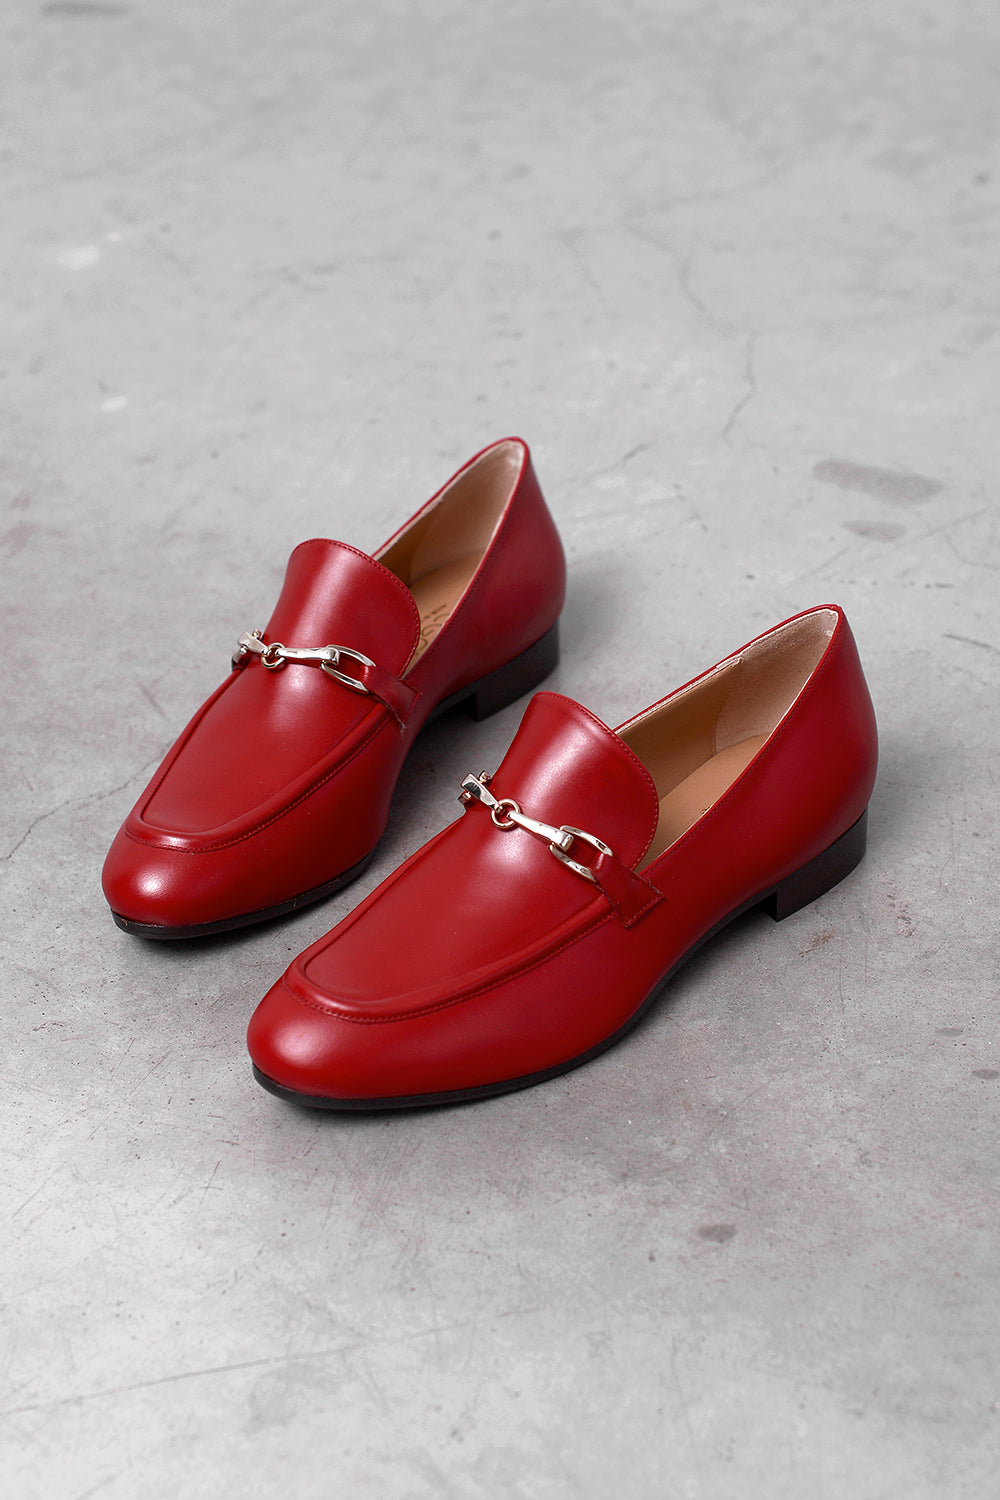 Beverly Vit Shoe - rosso